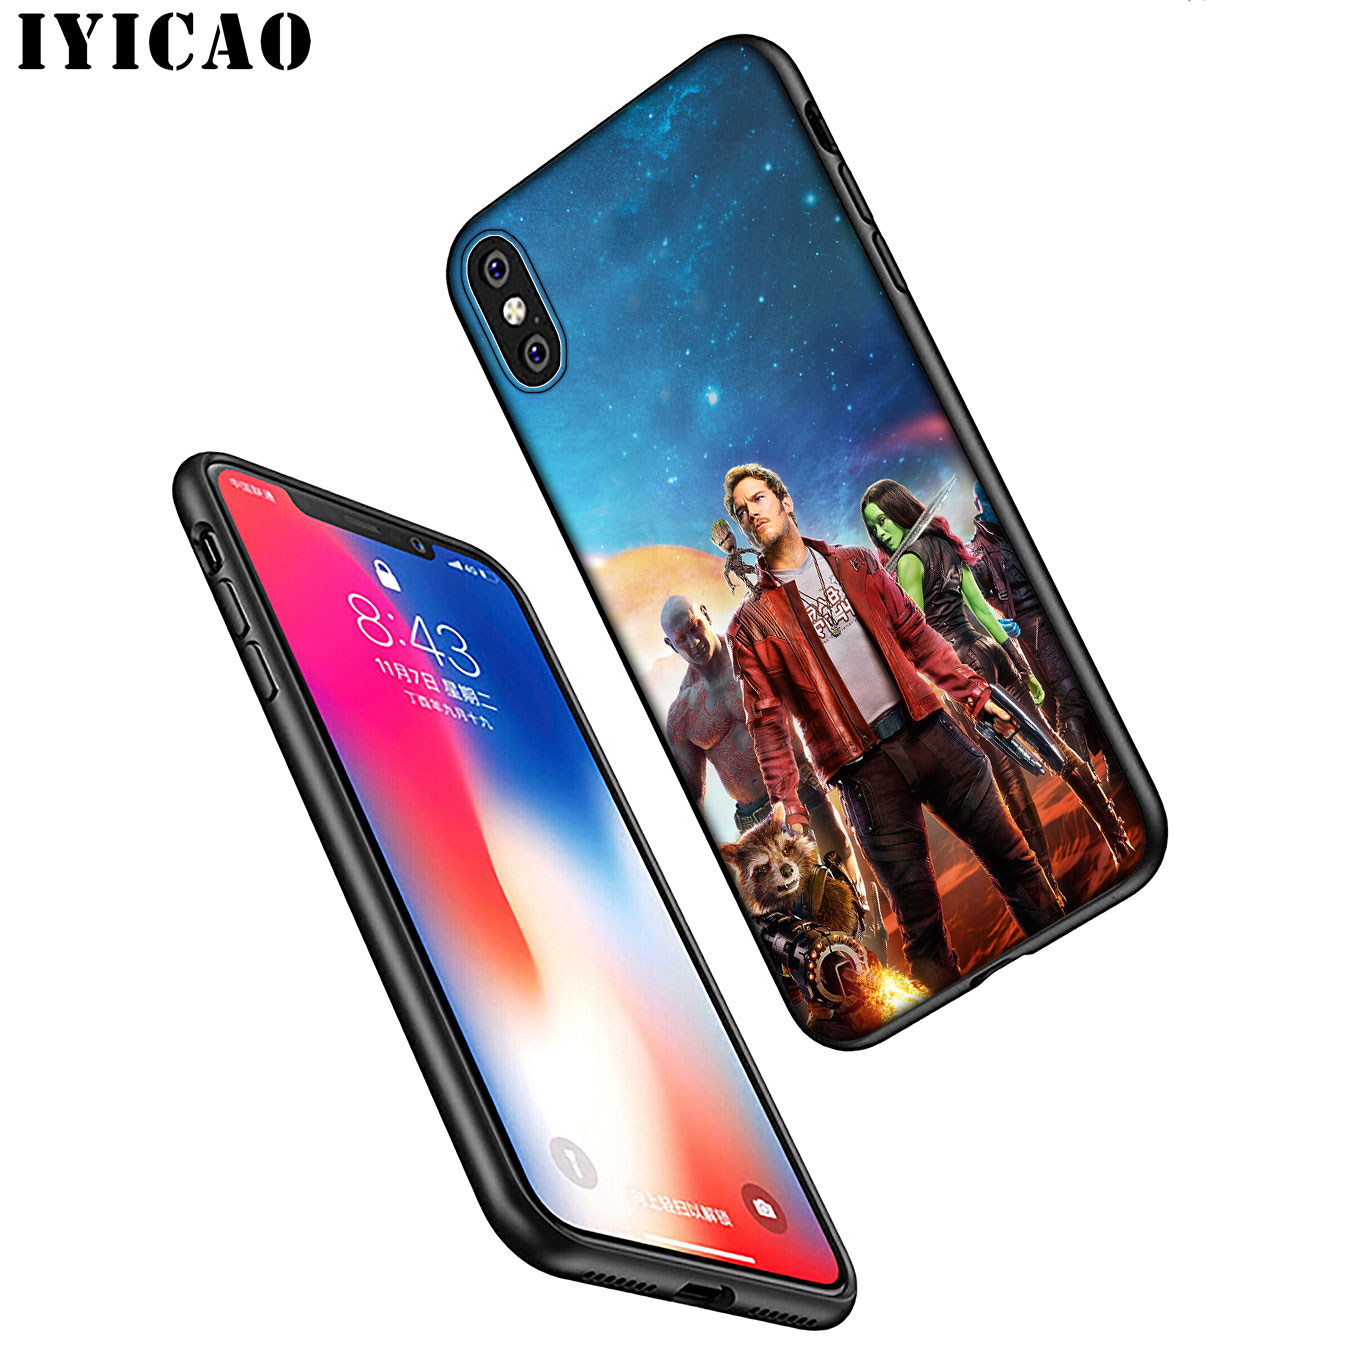 IYICAO Marvel The Avengers Jorker Dead Pool Soft Silicone Phone Case for iPhone XR X XS 11 Pro Max 6 6S 7 8 Plus 5 5S SE Black in Fitted Cases from Cellphones Telecommunications